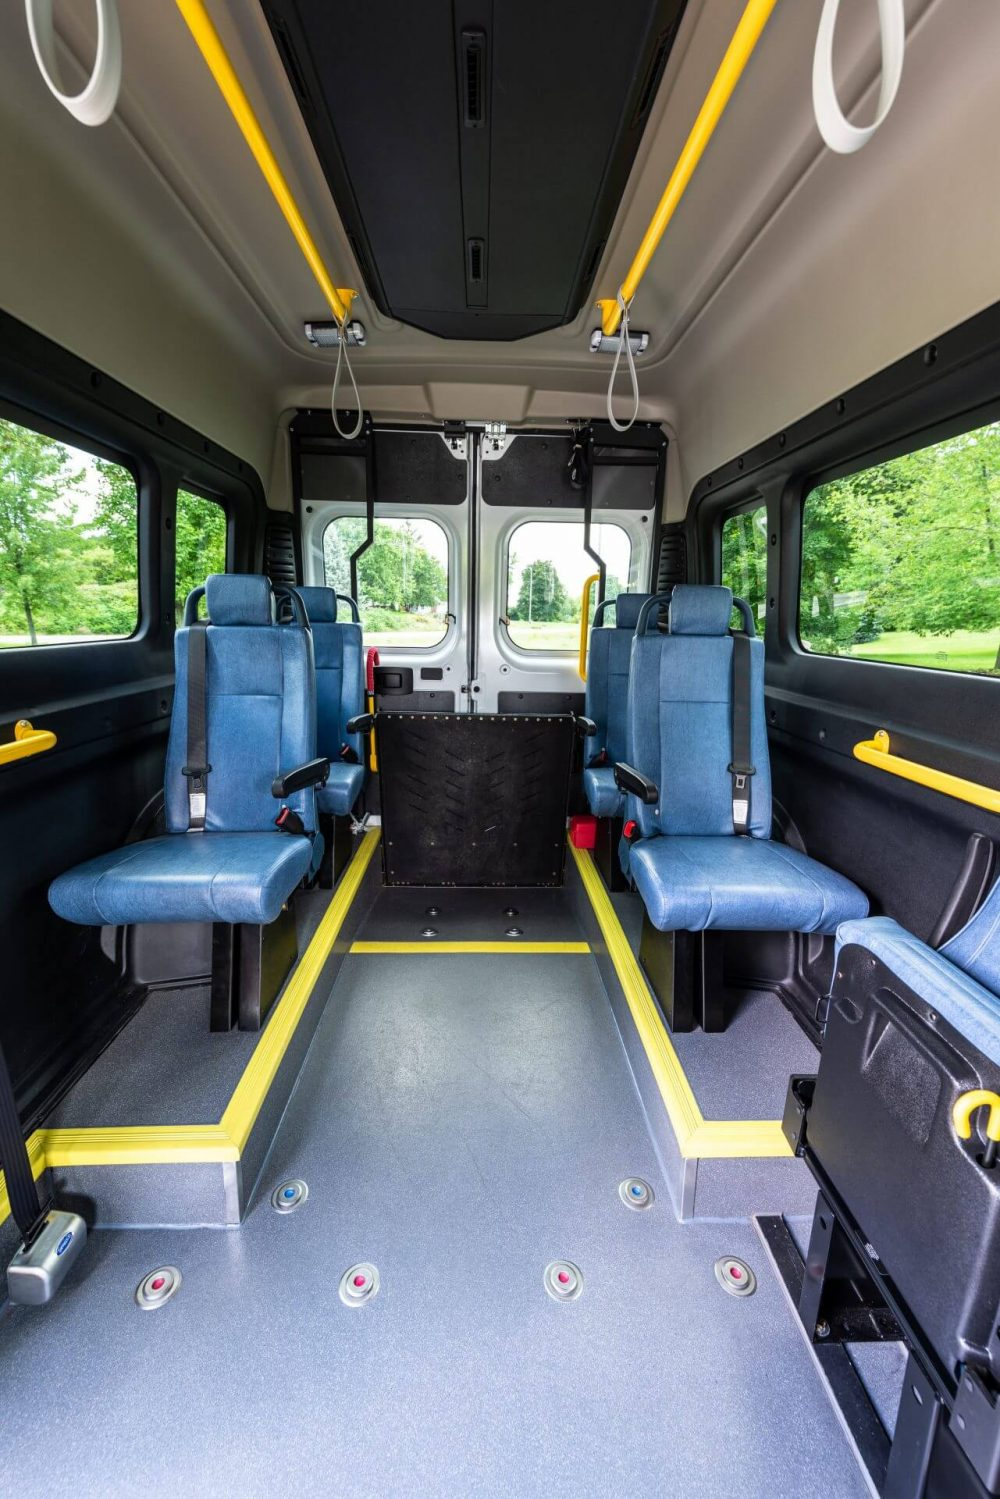 The Community Shuttle 2 (CS-2) is a Wheelchair Conversions vehicle.